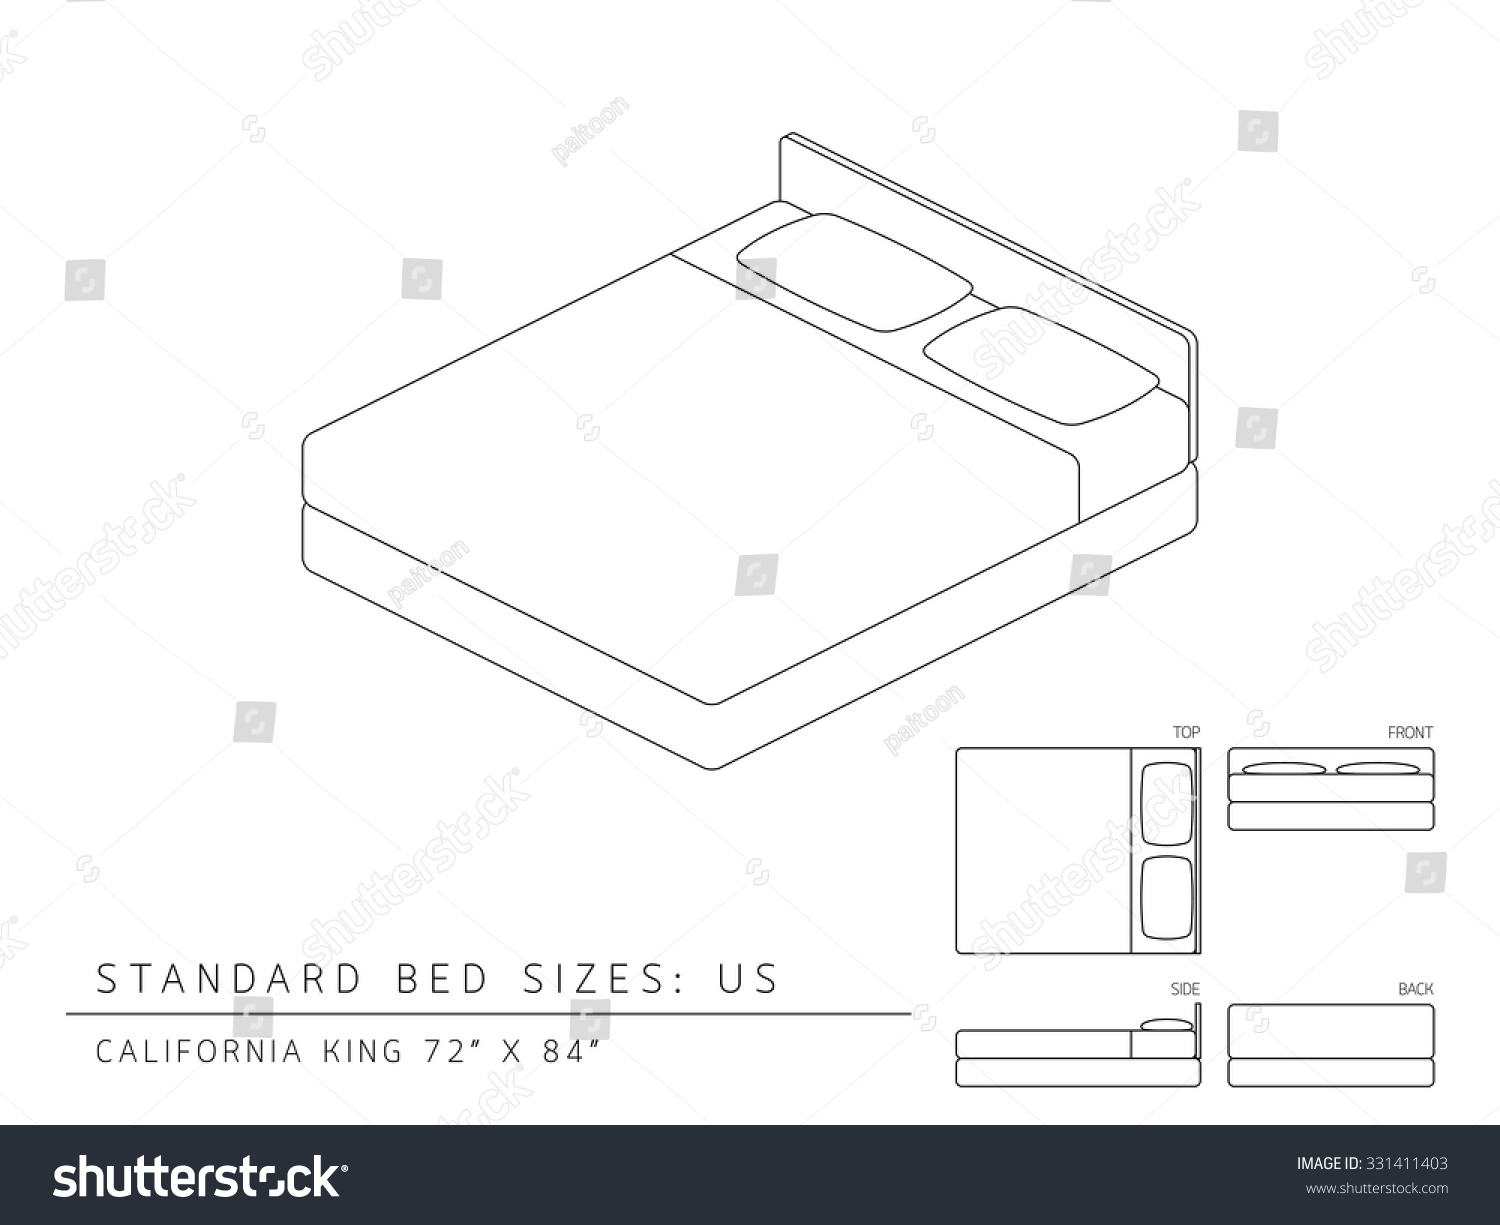 Standard twin bed size dimensions - King Size Bed Dimensions Motels Standard Bed Sizes Of Us United States Of America California